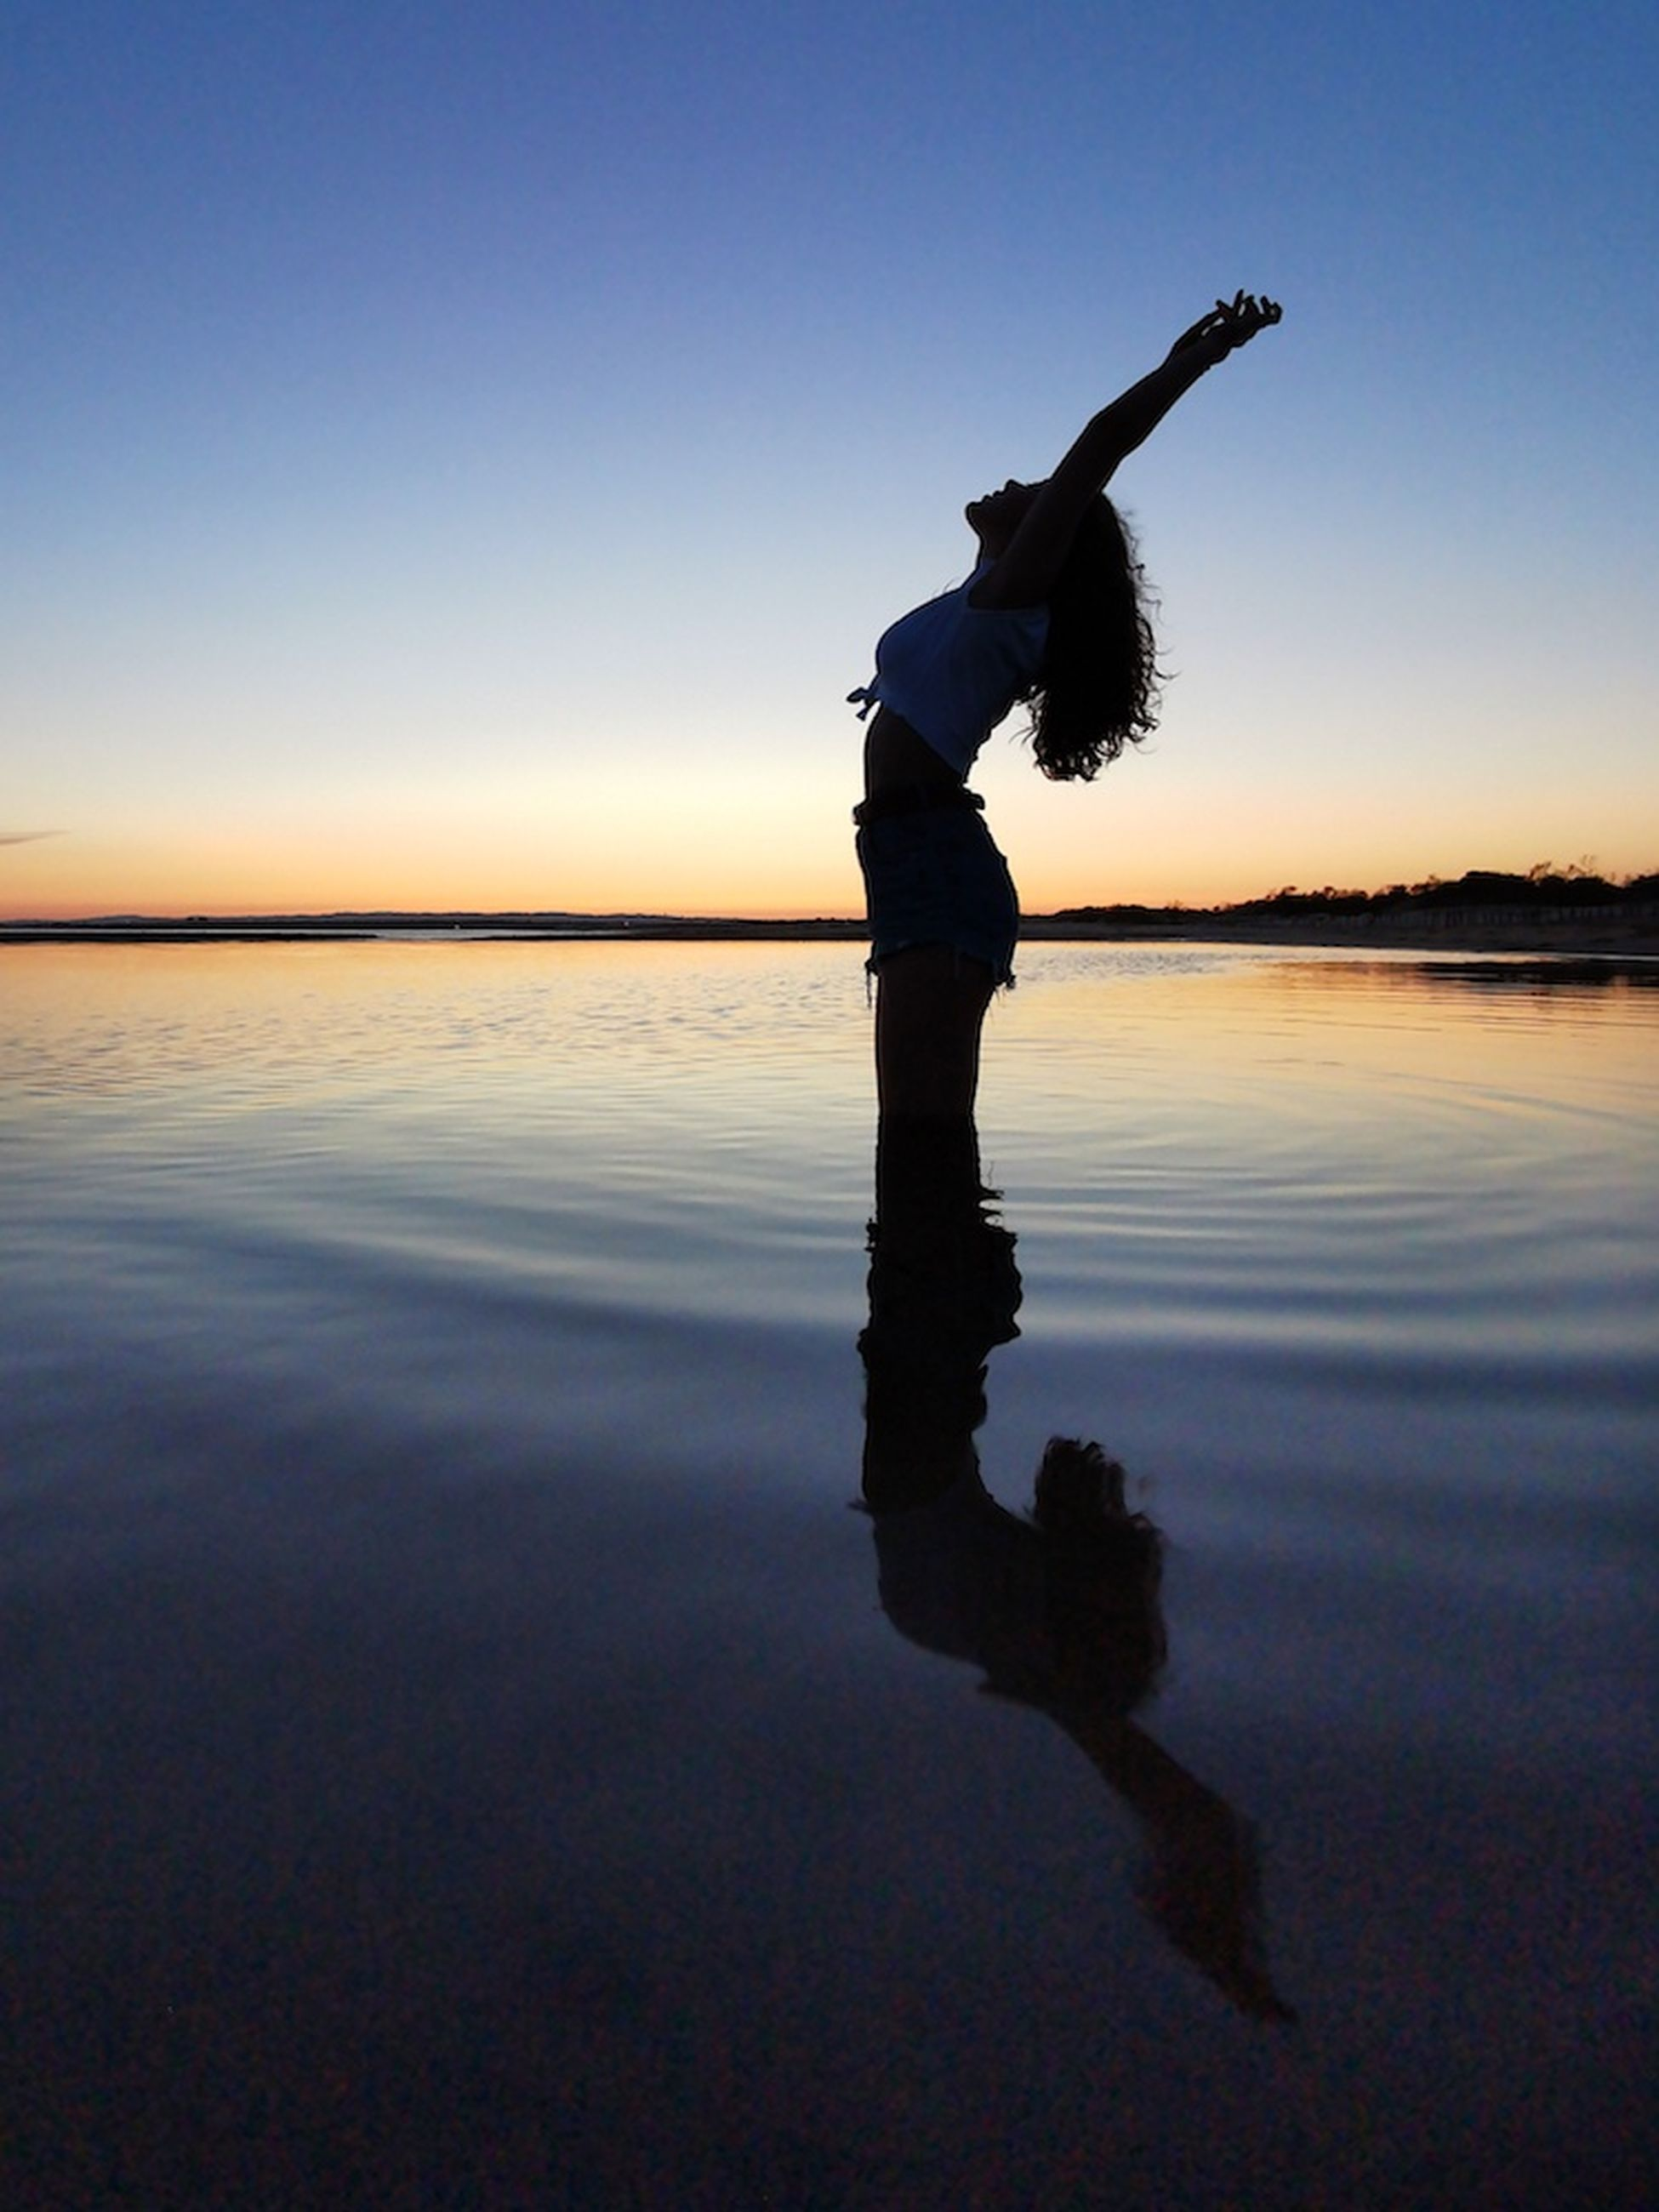 sky, water, sunset, real people, one person, reflection, silhouette, lifestyles, leisure activity, sea, nature, human arm, women, beauty in nature, beach, tranquility, full length, copy space, standing, arms raised, outdoors